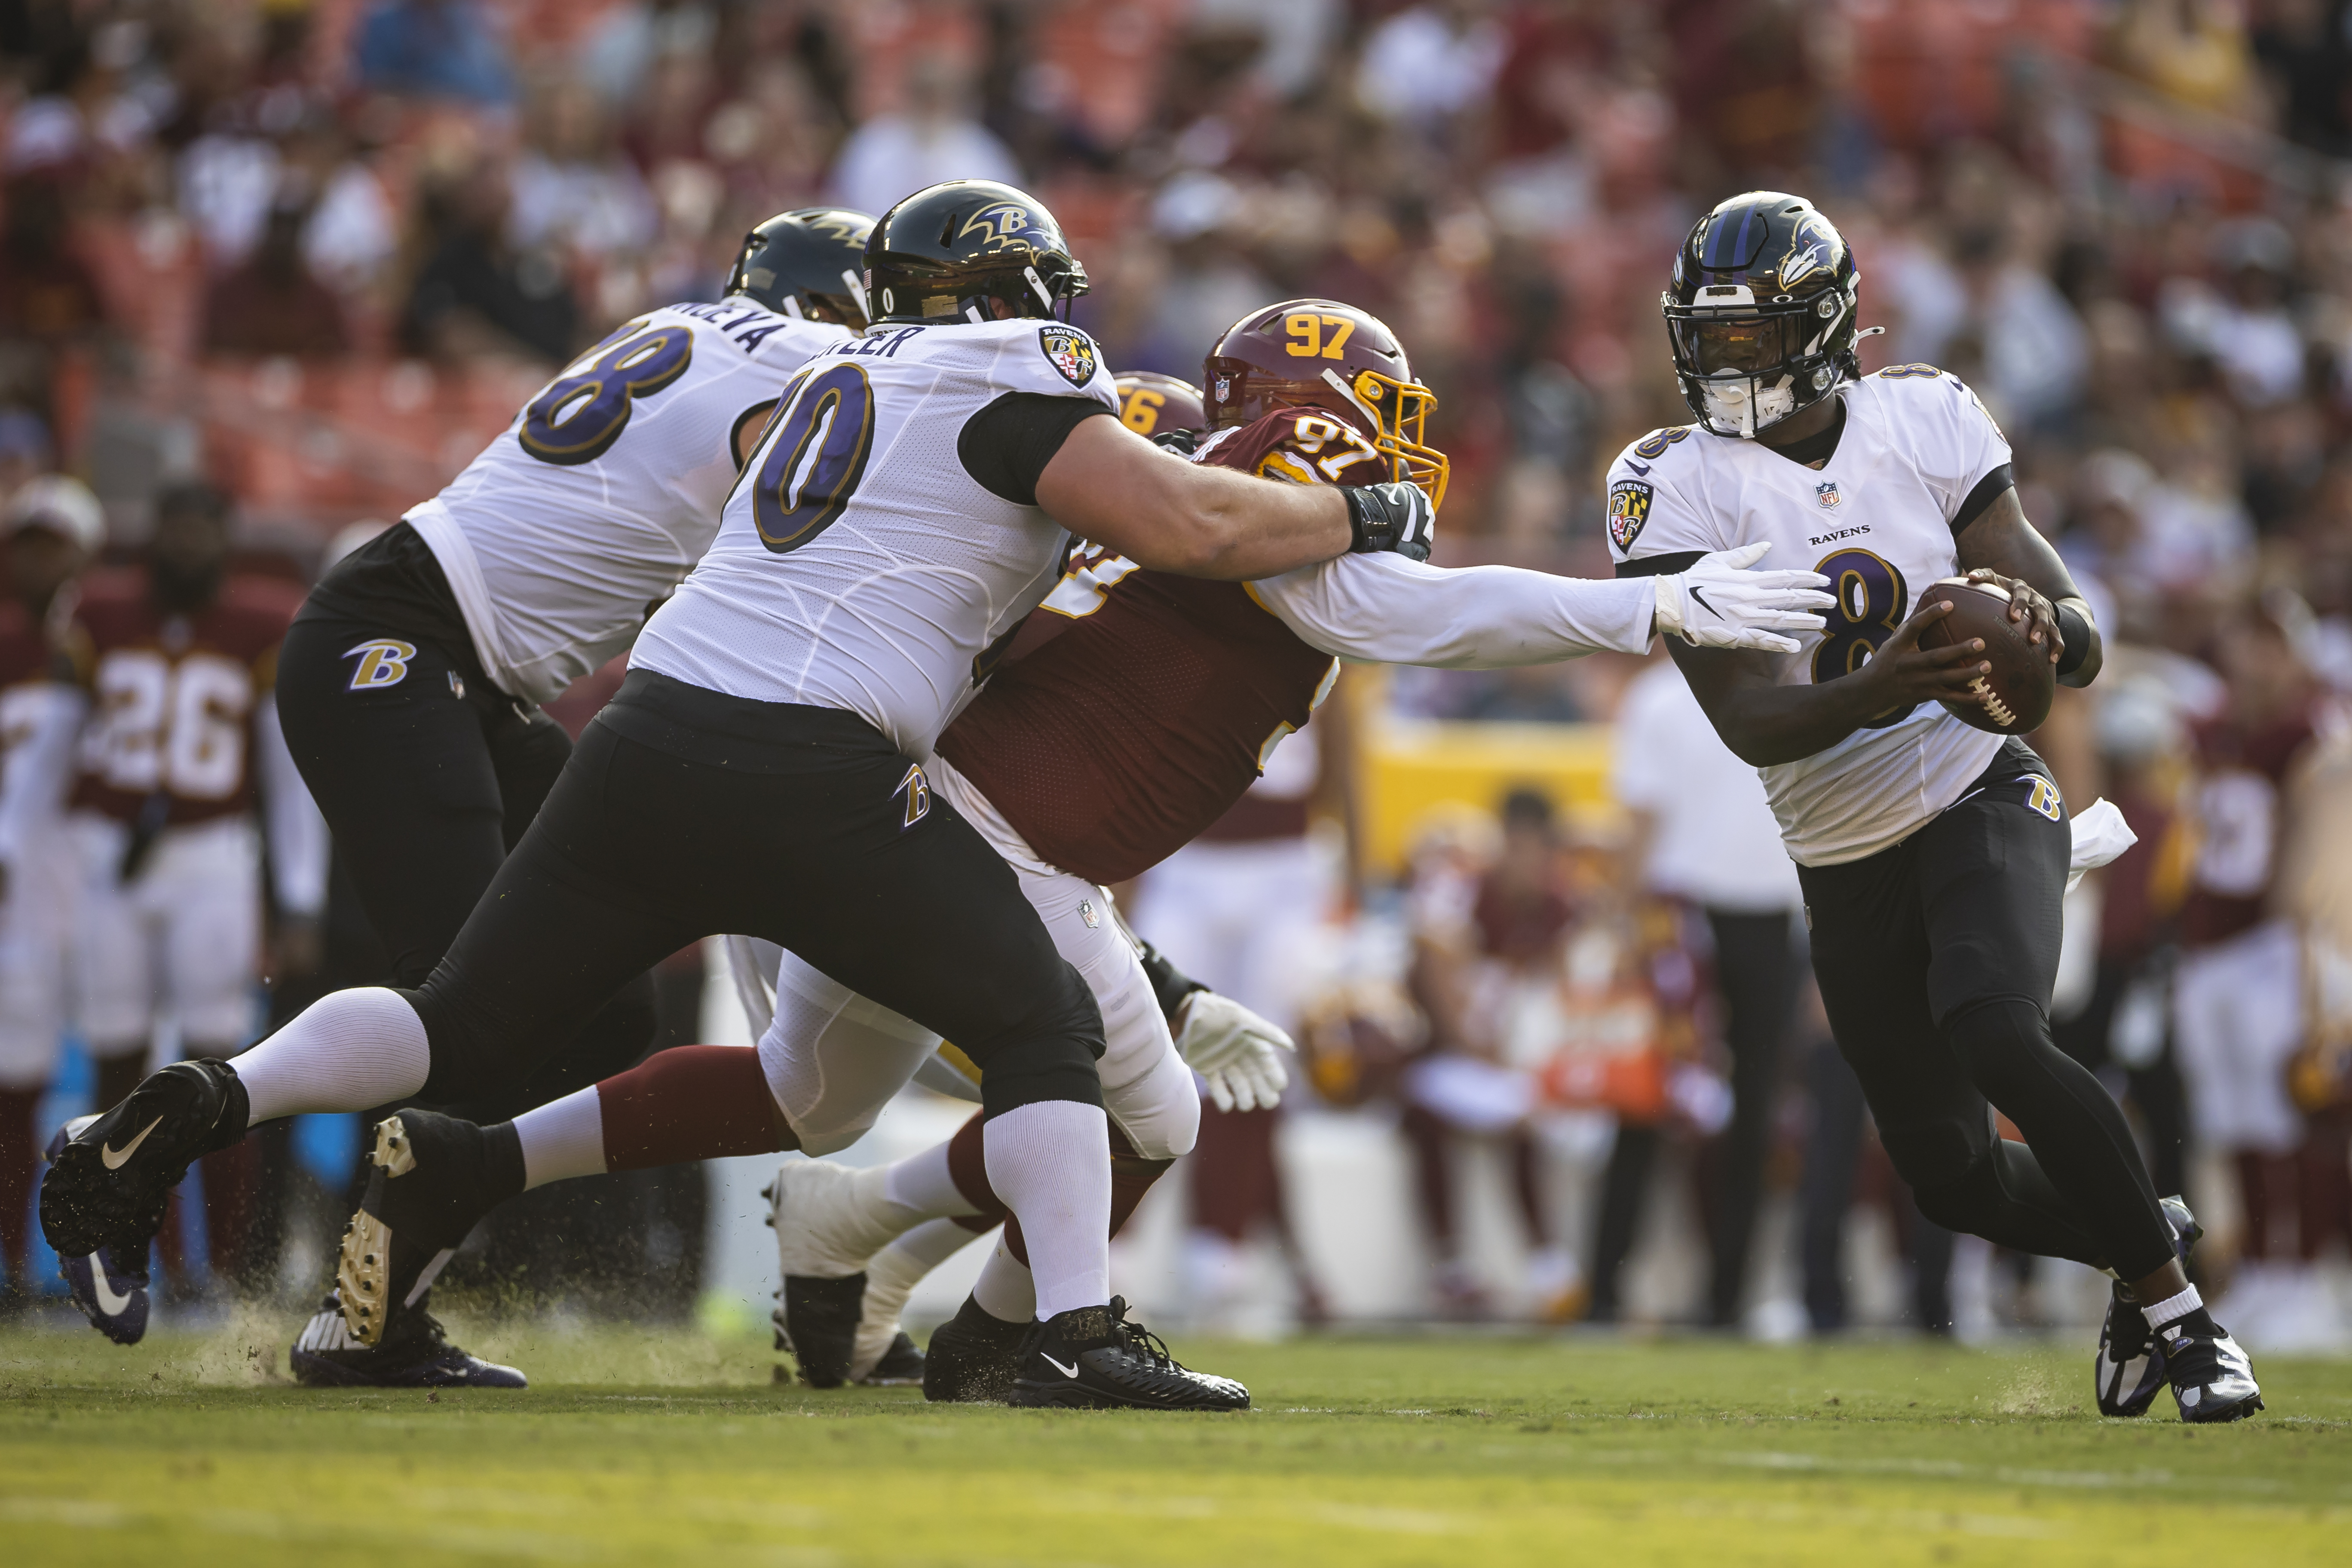 Ravens Set NFL Record with 20th Straight Preseason Win After Beating WFT